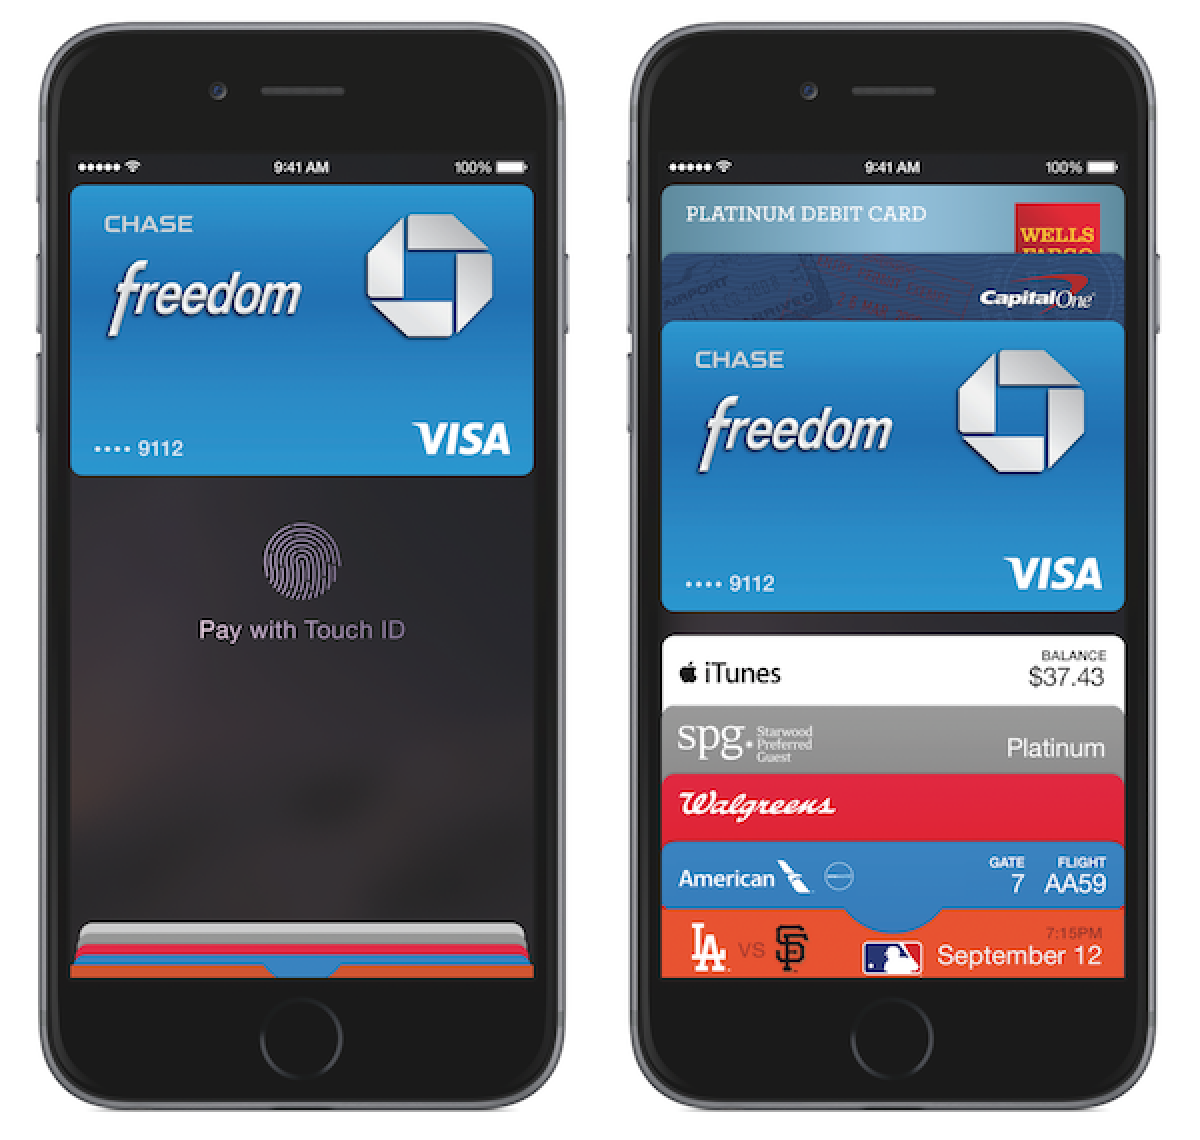 apple pay app showing Chase credit card on an iphone